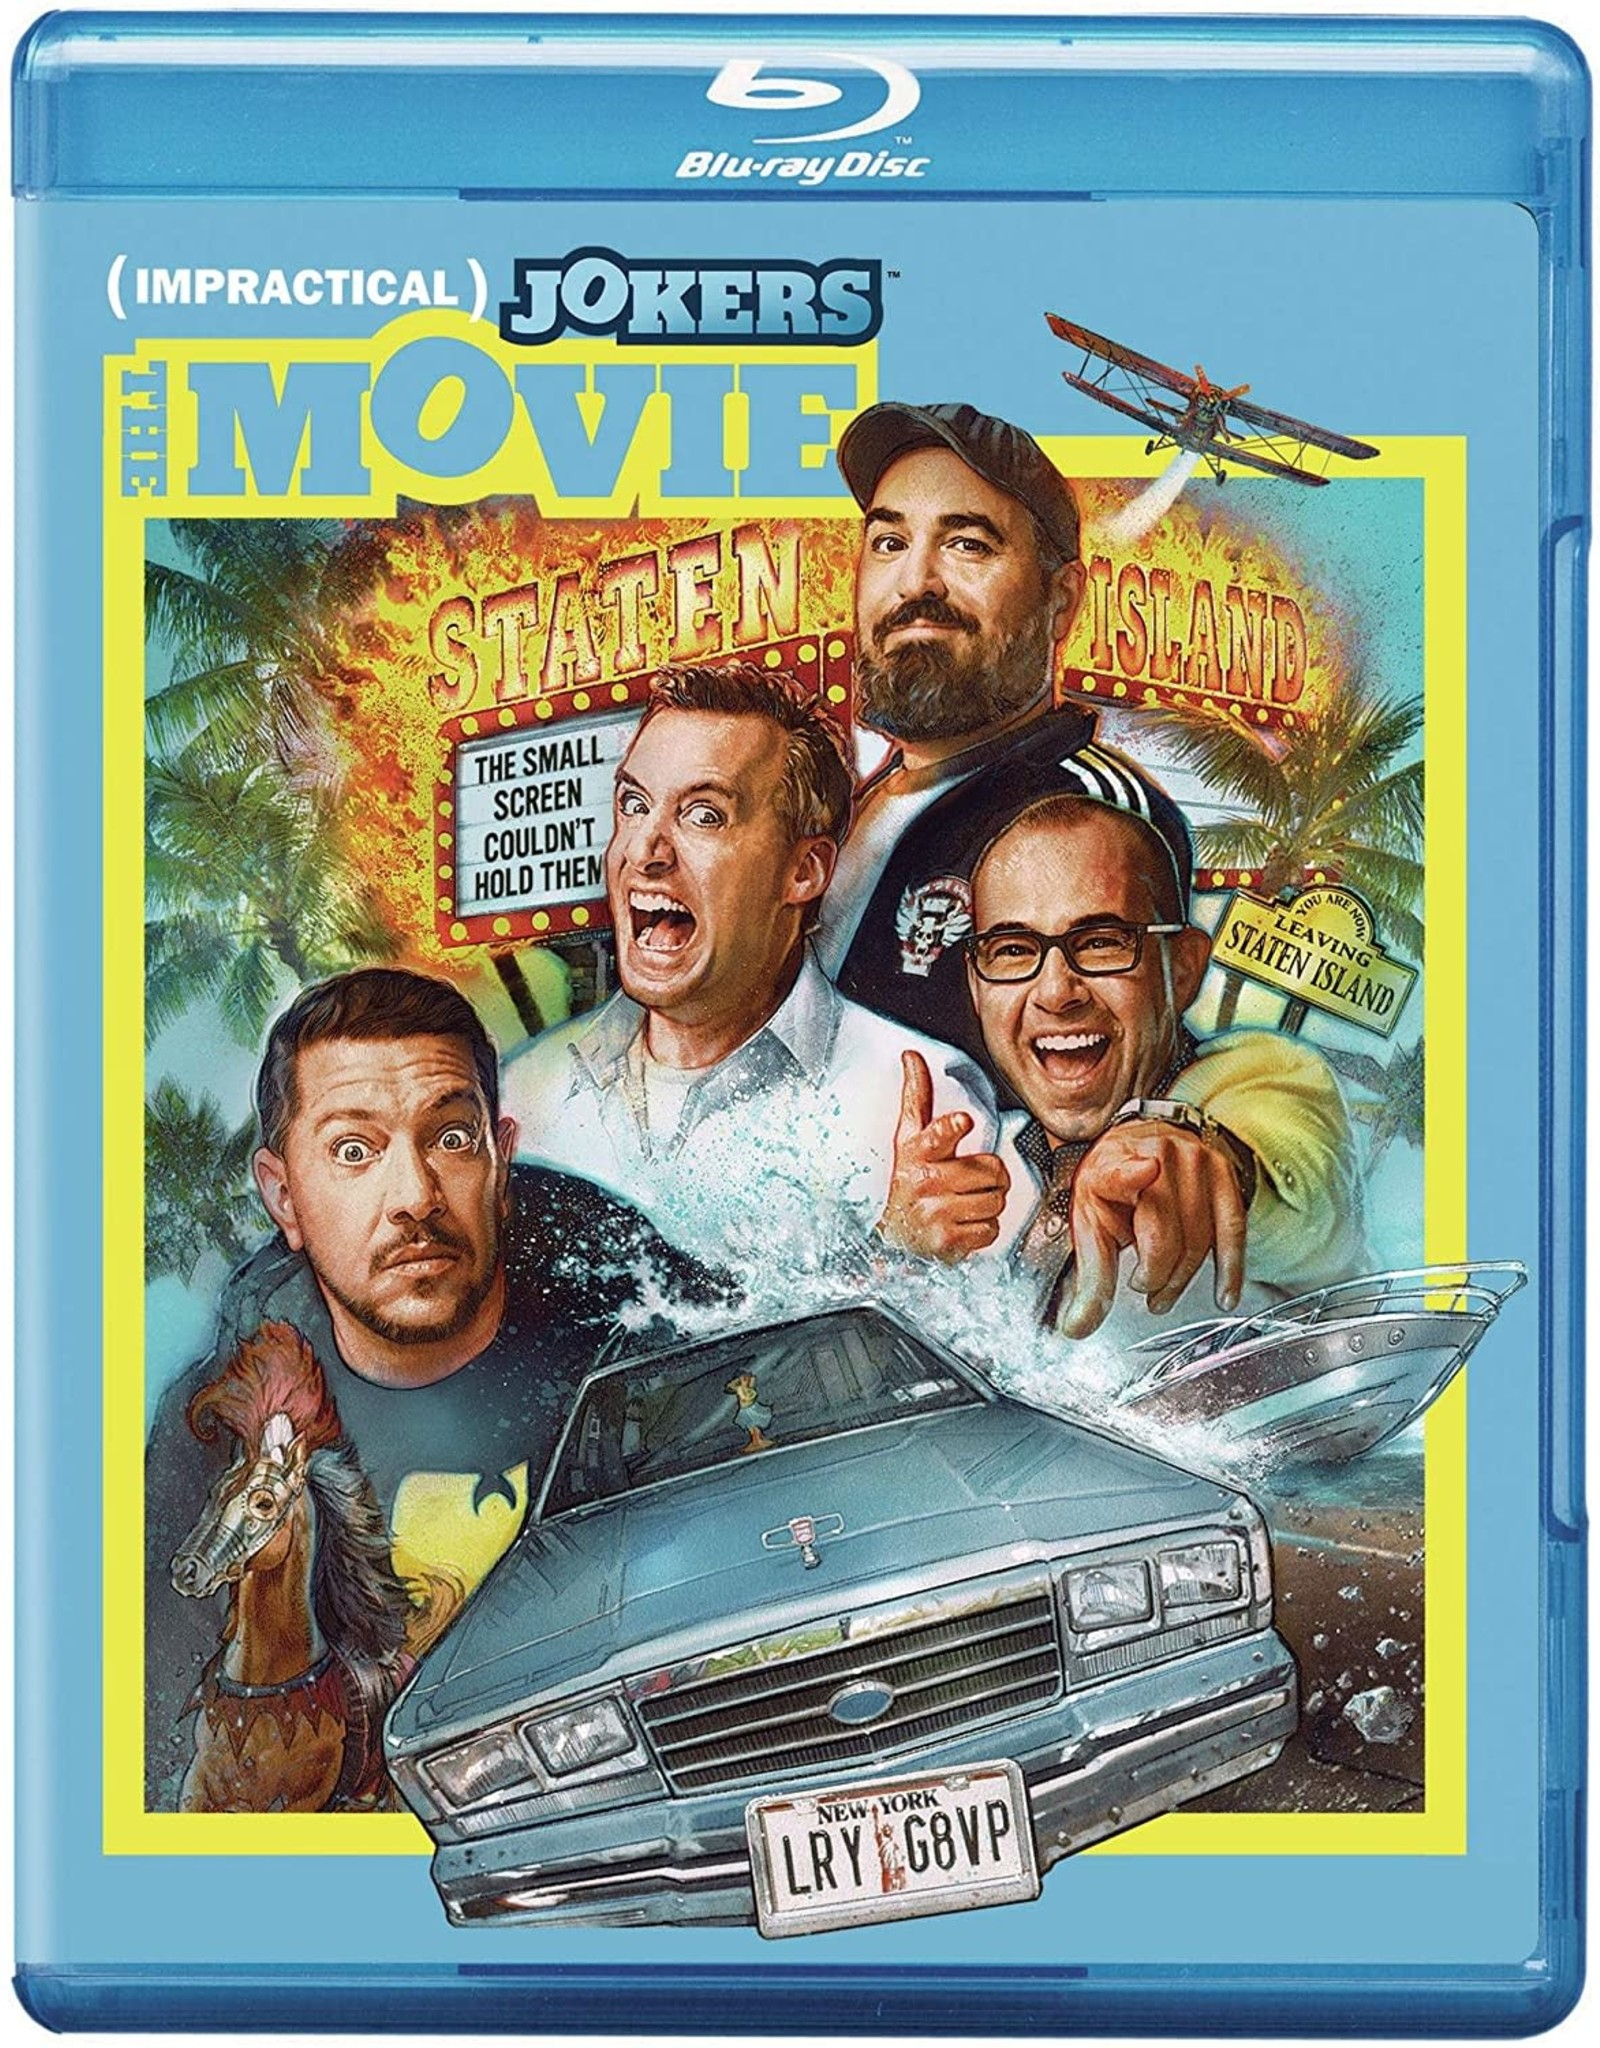 Used Bluray Impractical Jokers The Movie (USED)